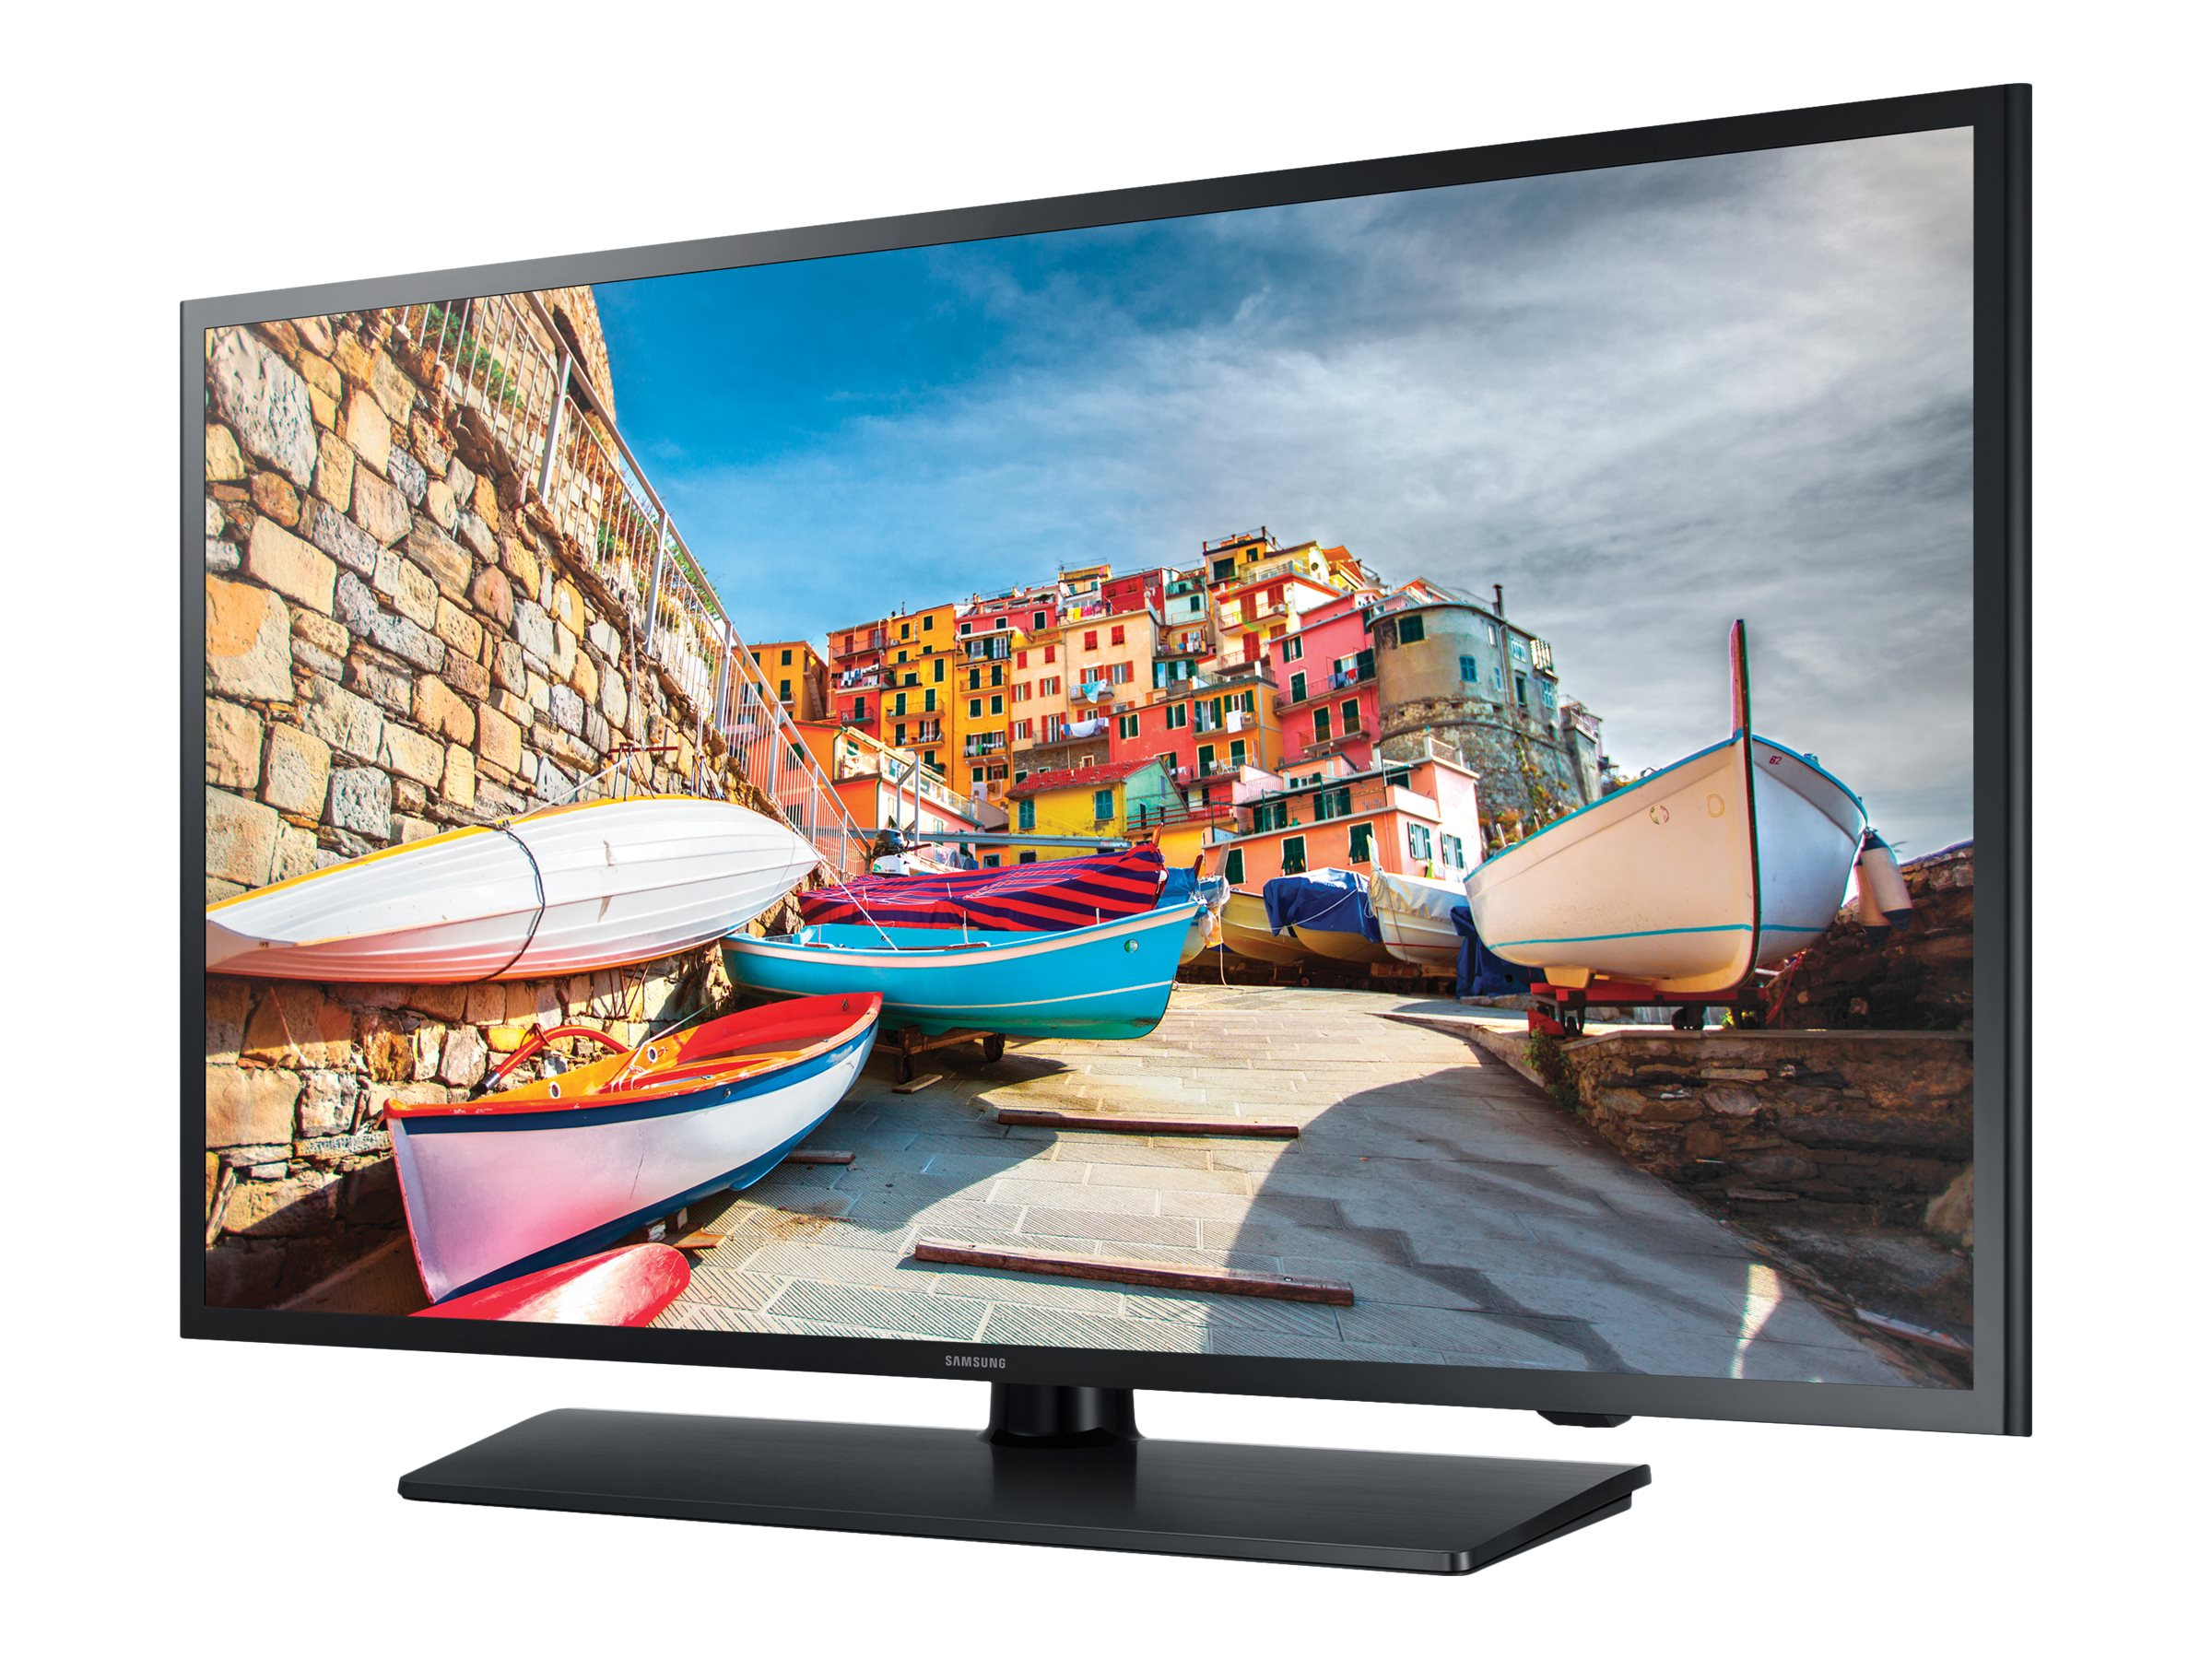 "Samsung HG40NE470SF HE470 series - 40"" LED display - Full HD"